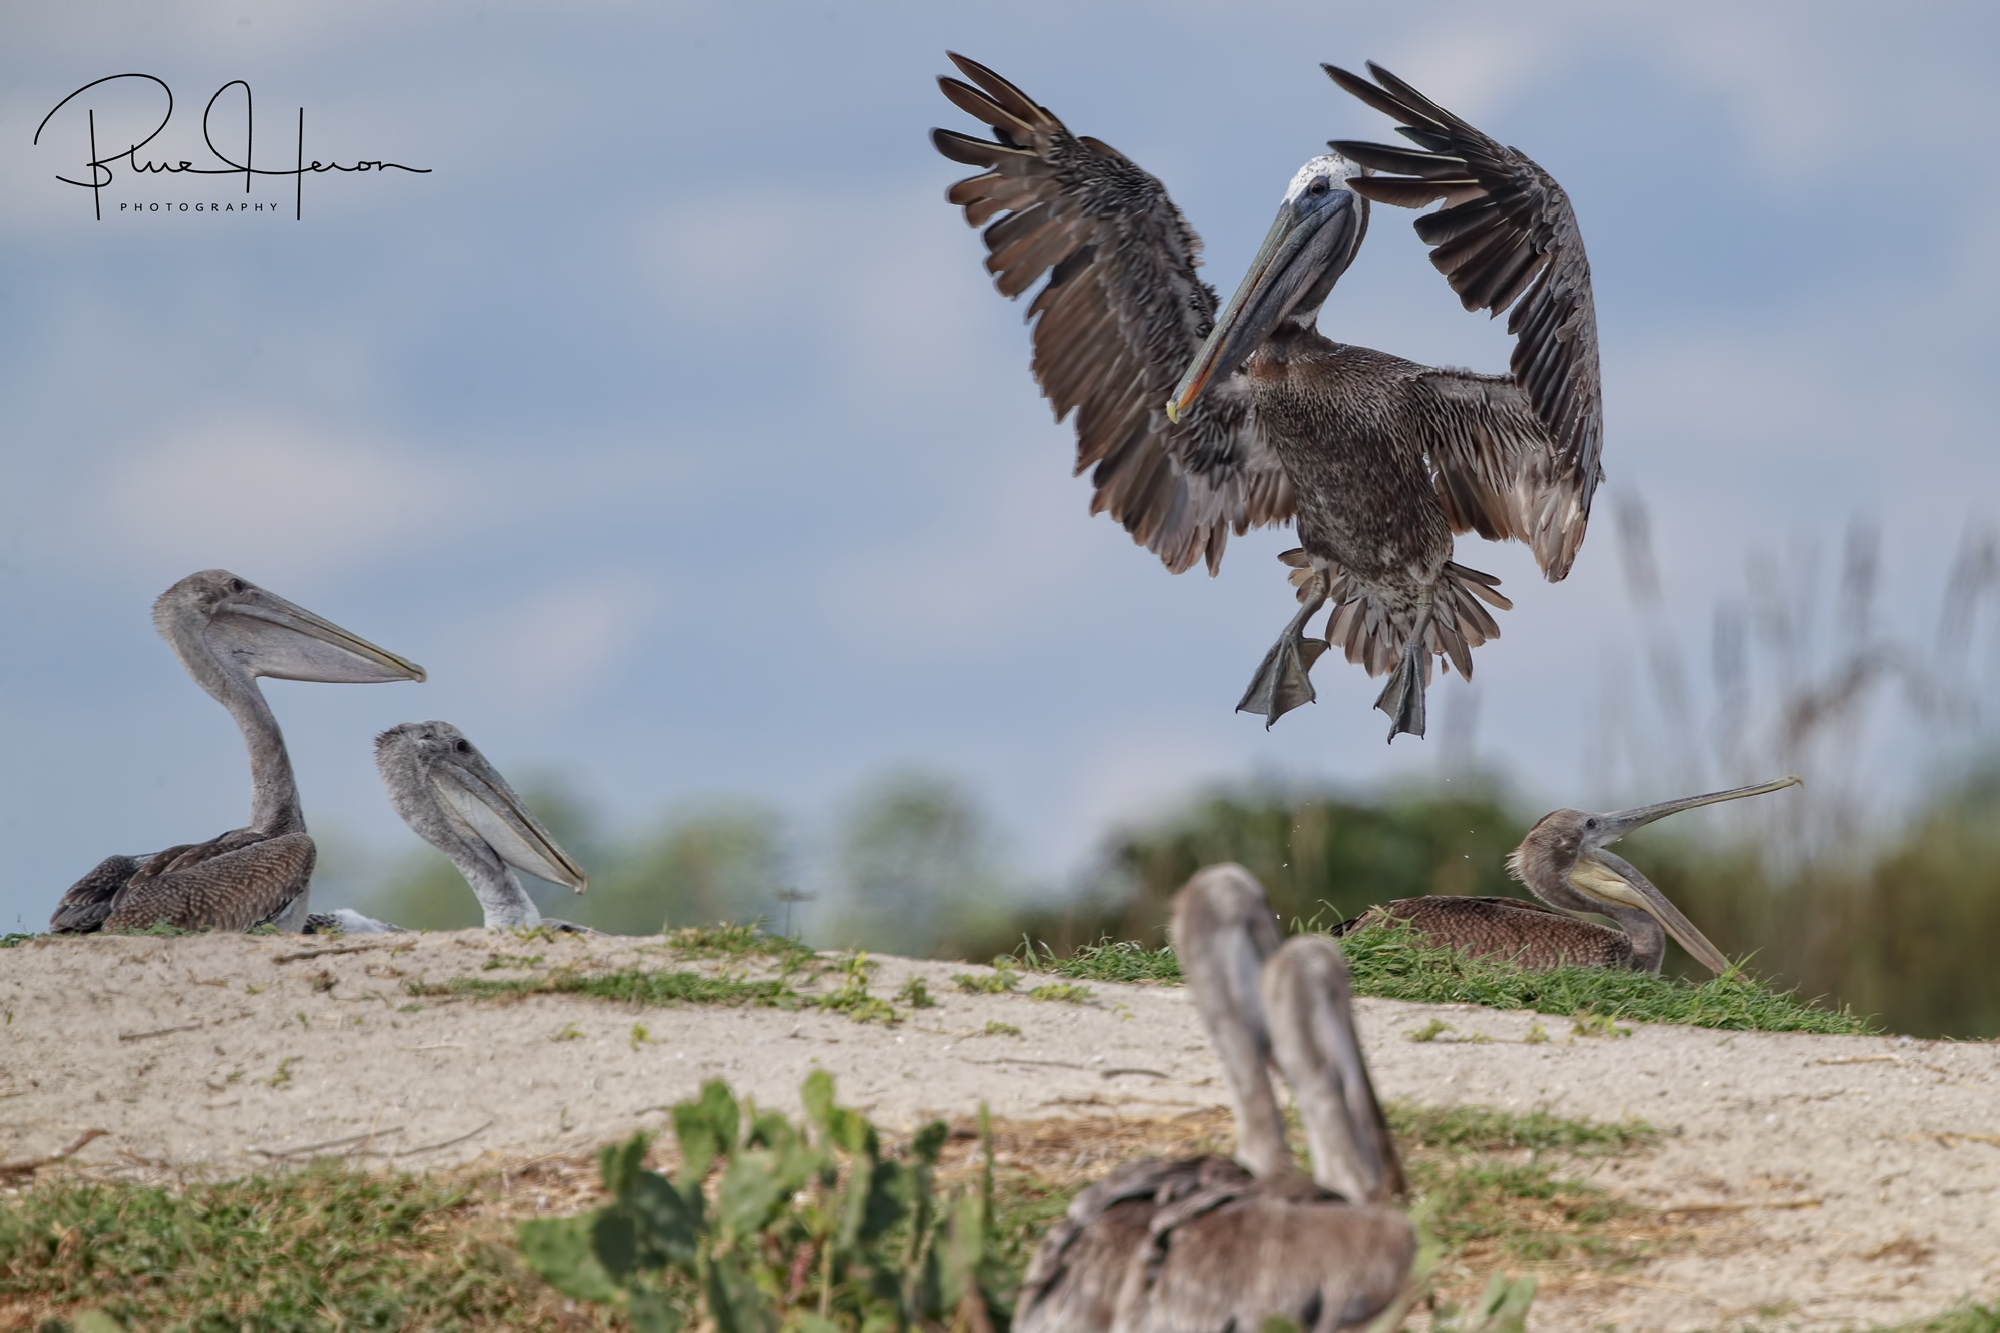 There were only one or two adults with the young Pelicans..